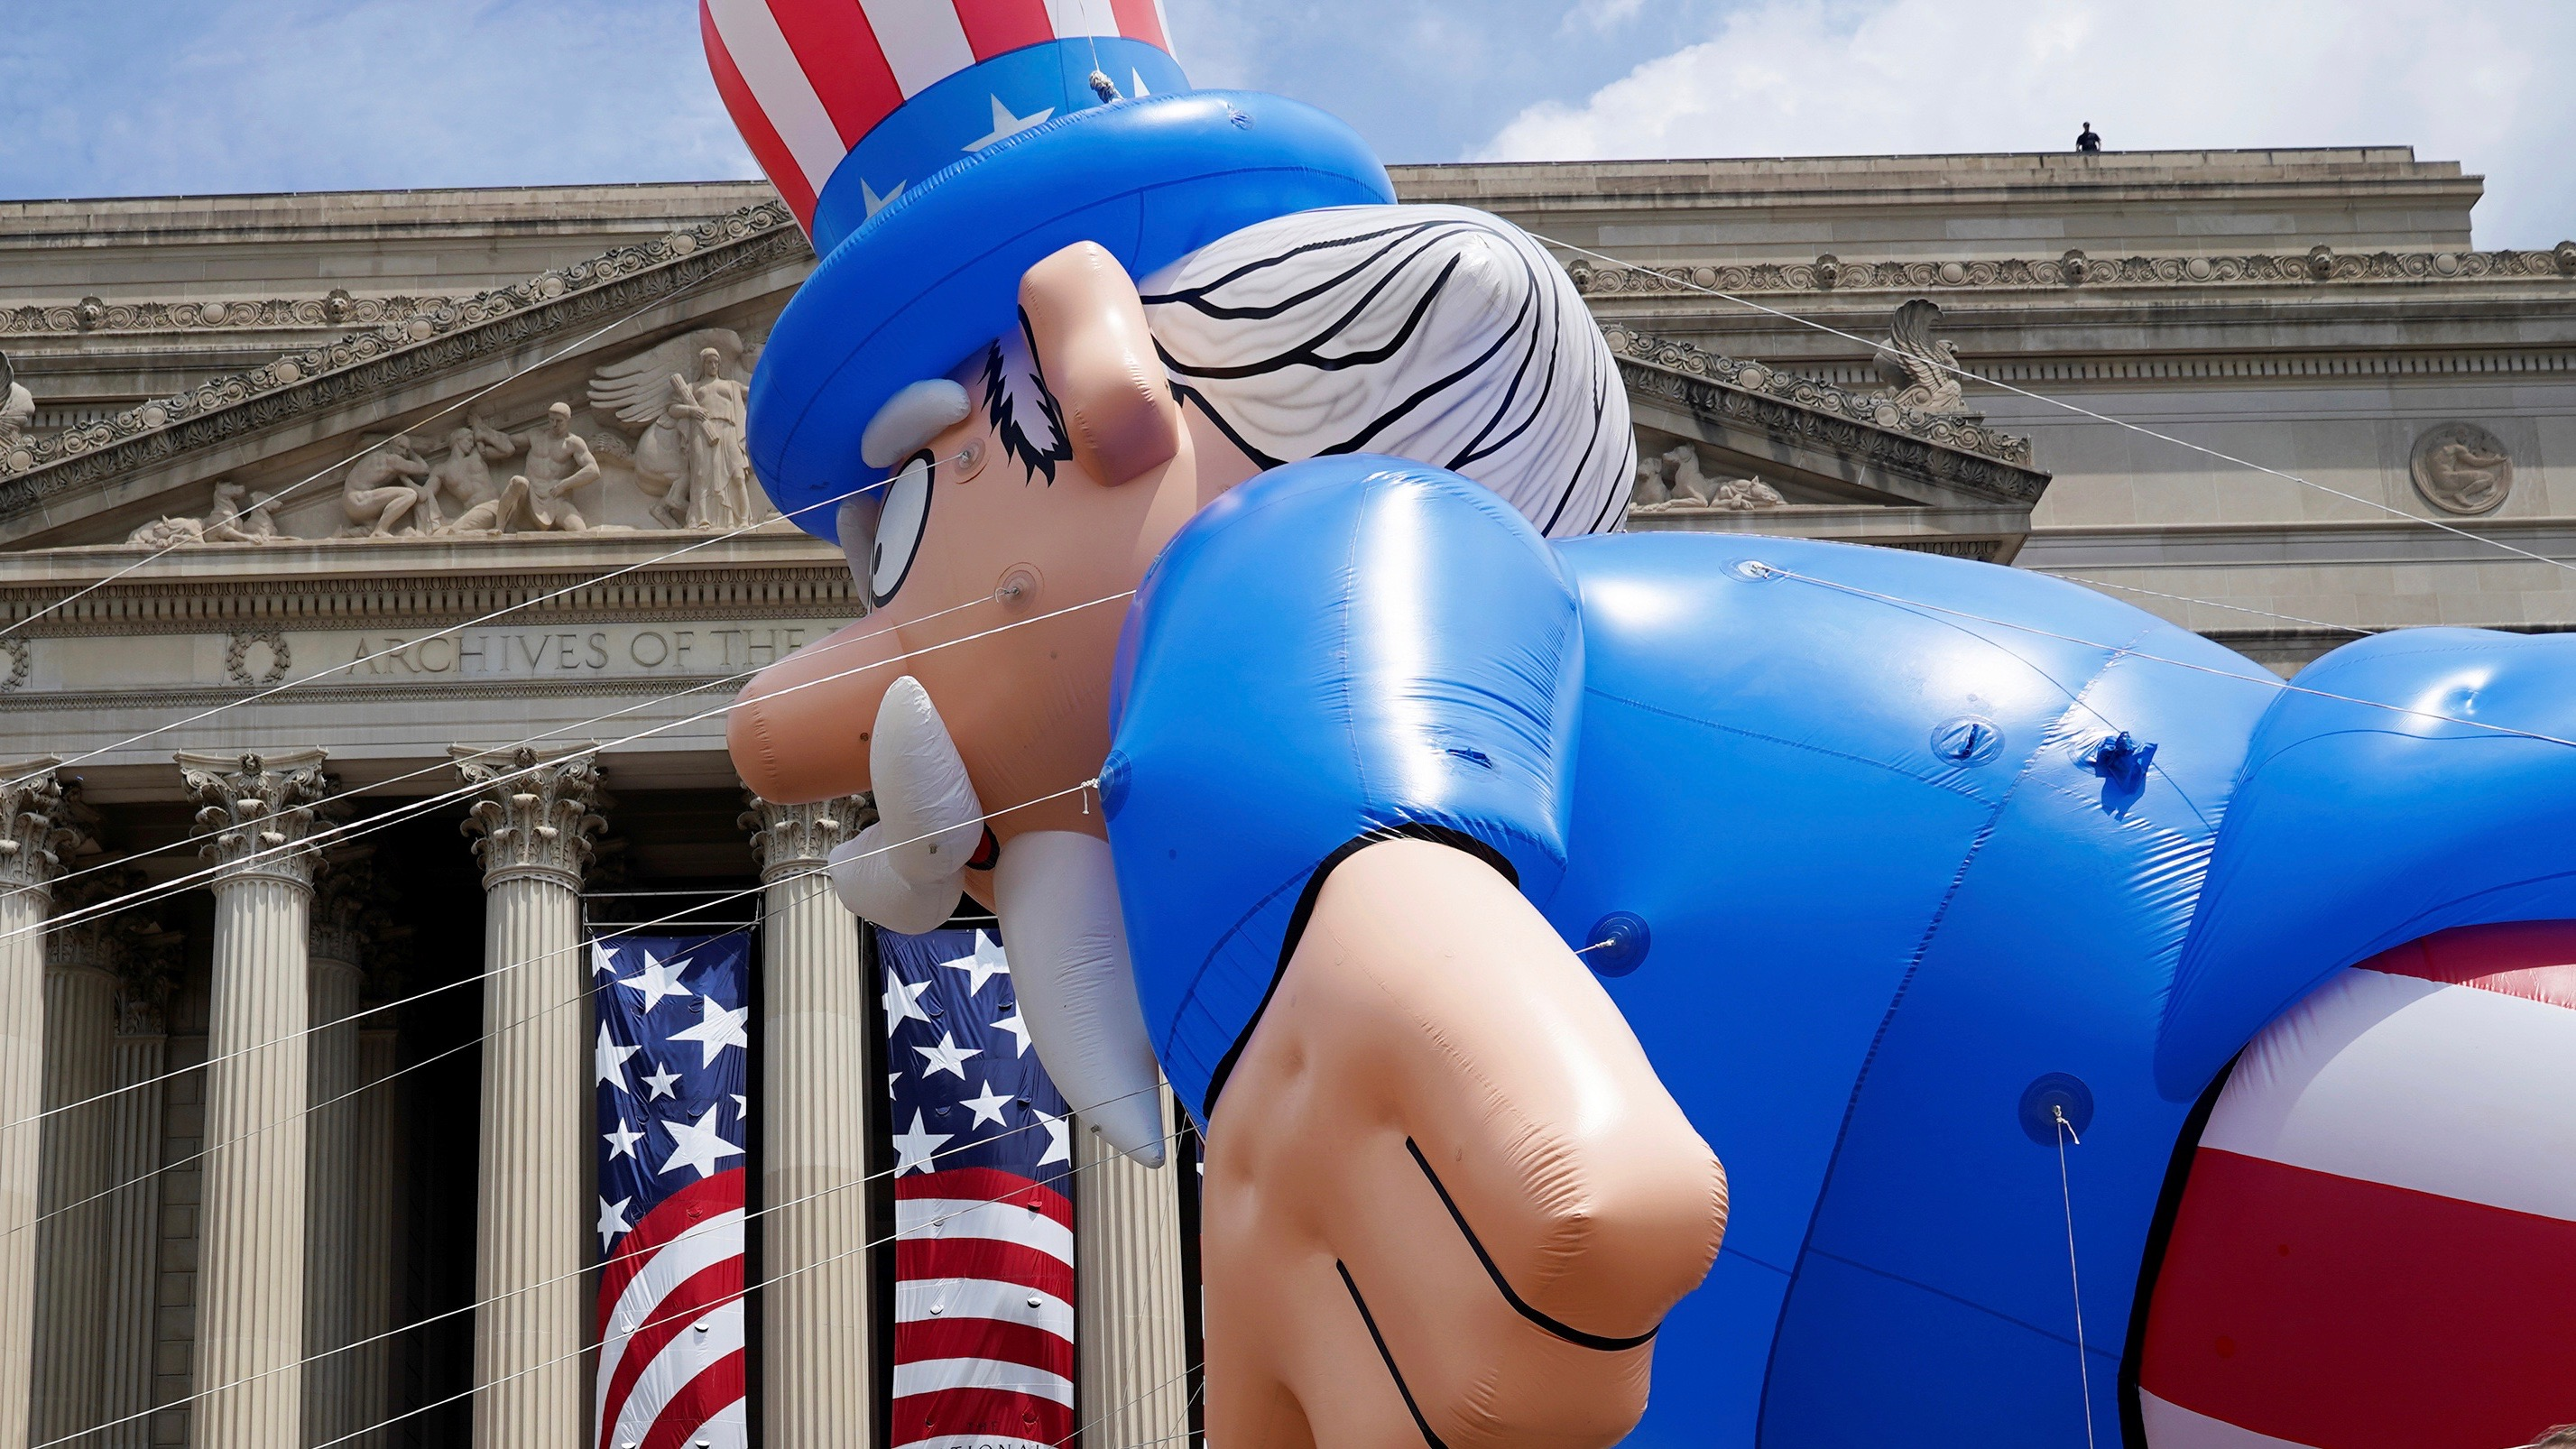 Uncle Sam Balloon on Independence Day.